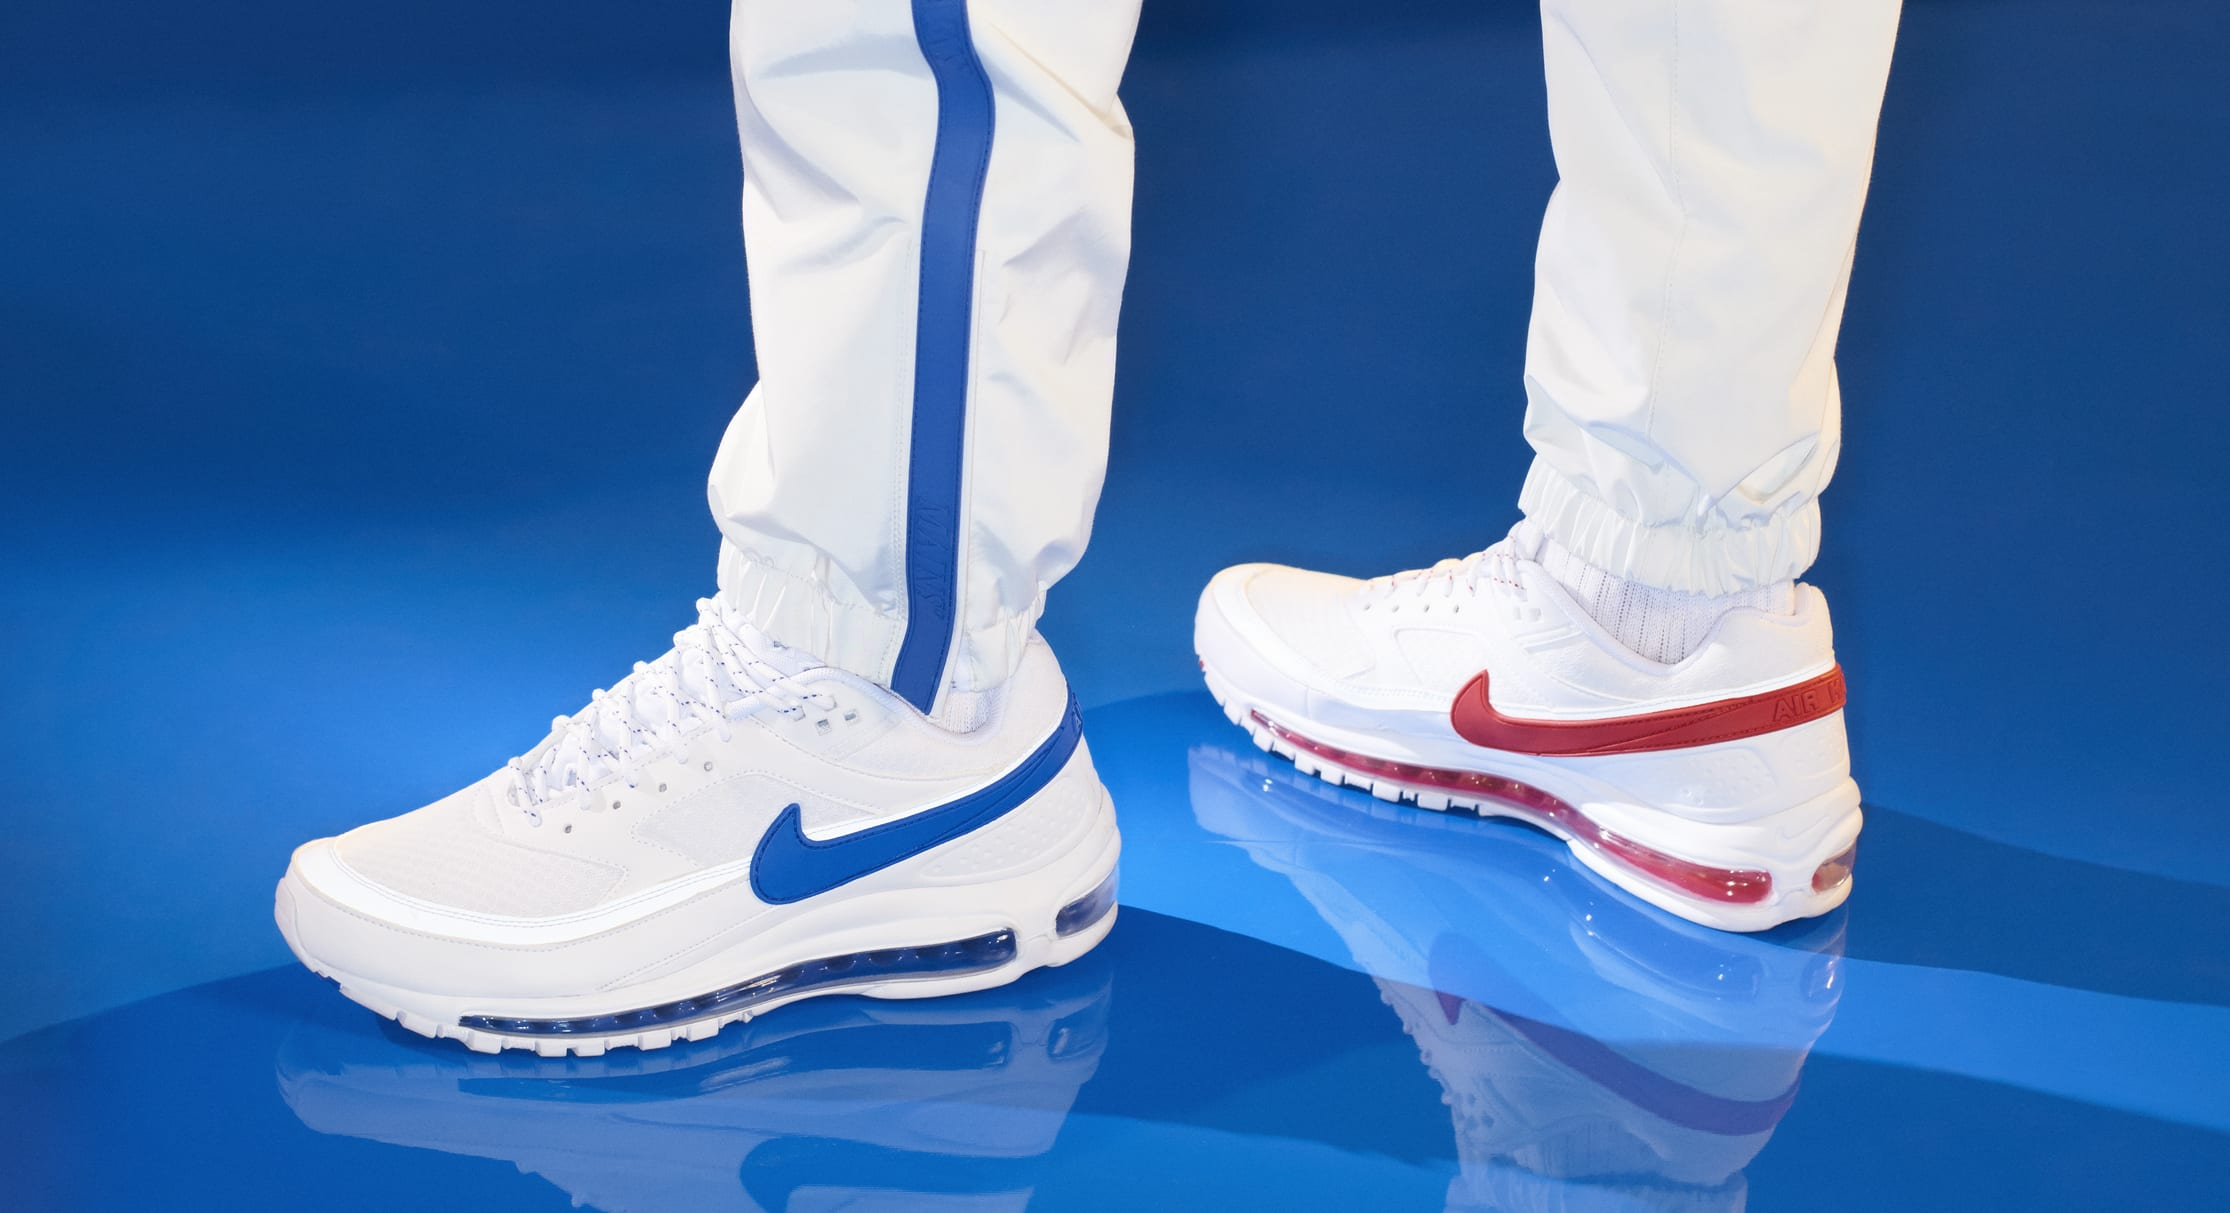 Skepta x Nike Air Mad 97 BW SK (On-Foot Blue)